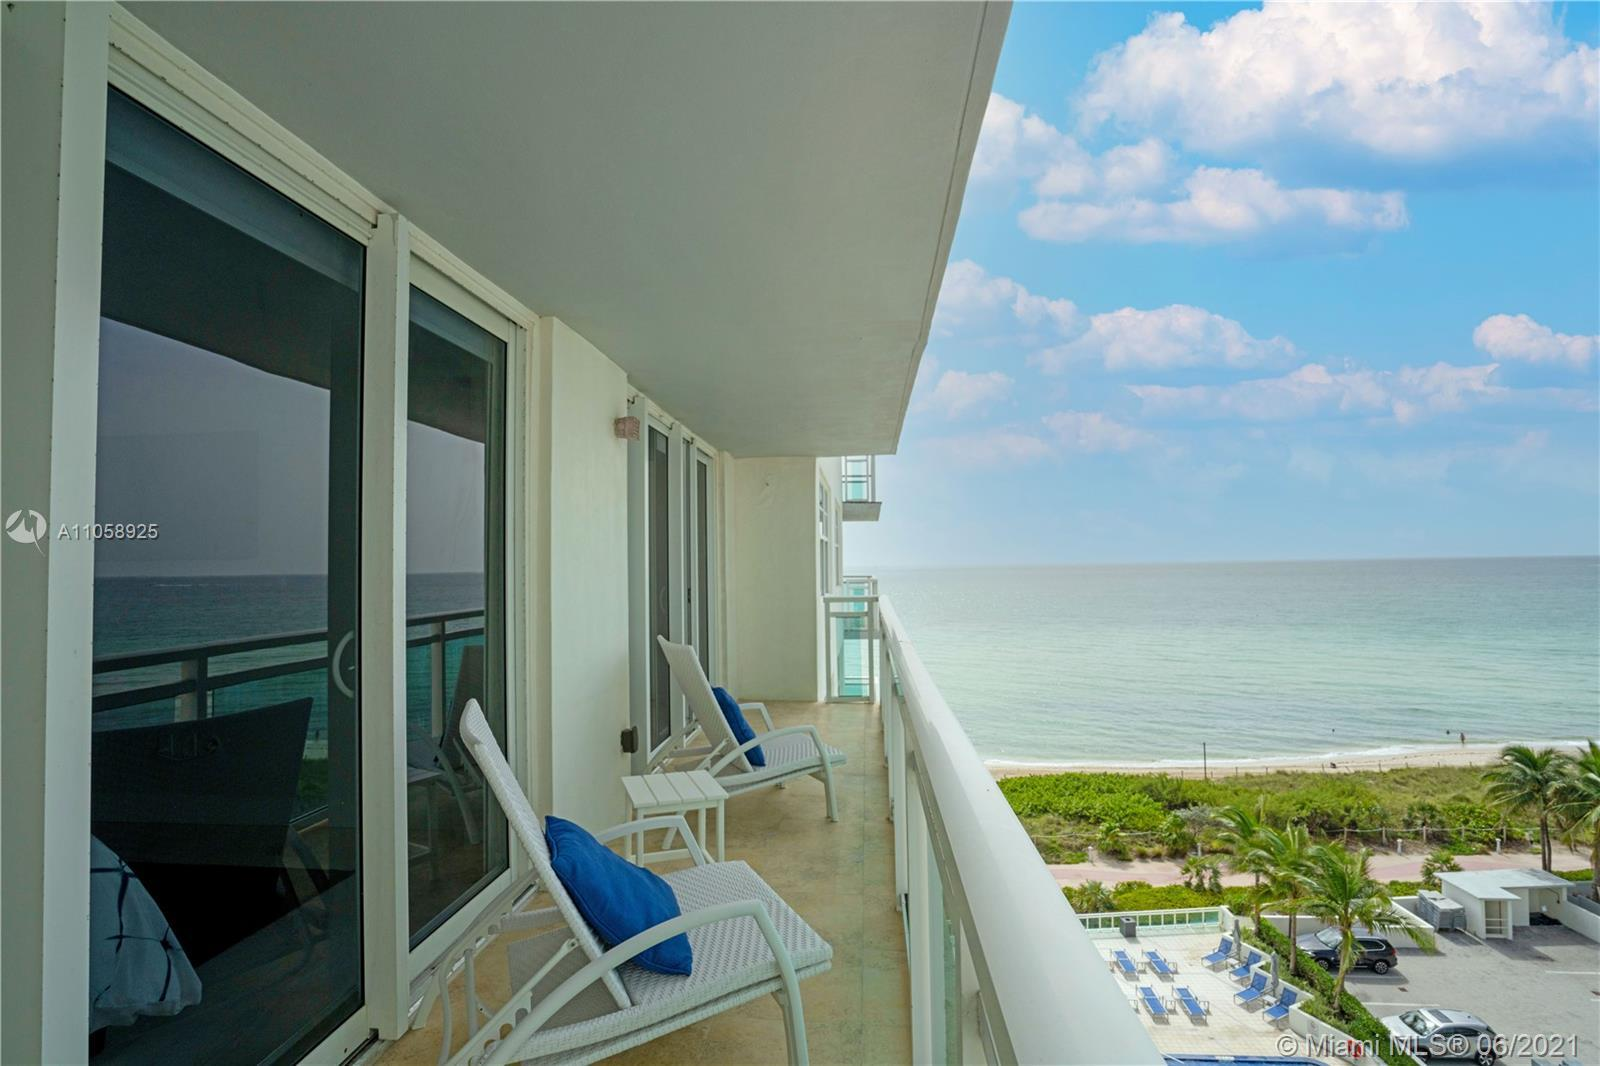 Your dream beach-front condo is finally here! This renovated two-bed/two-bath home with beach views